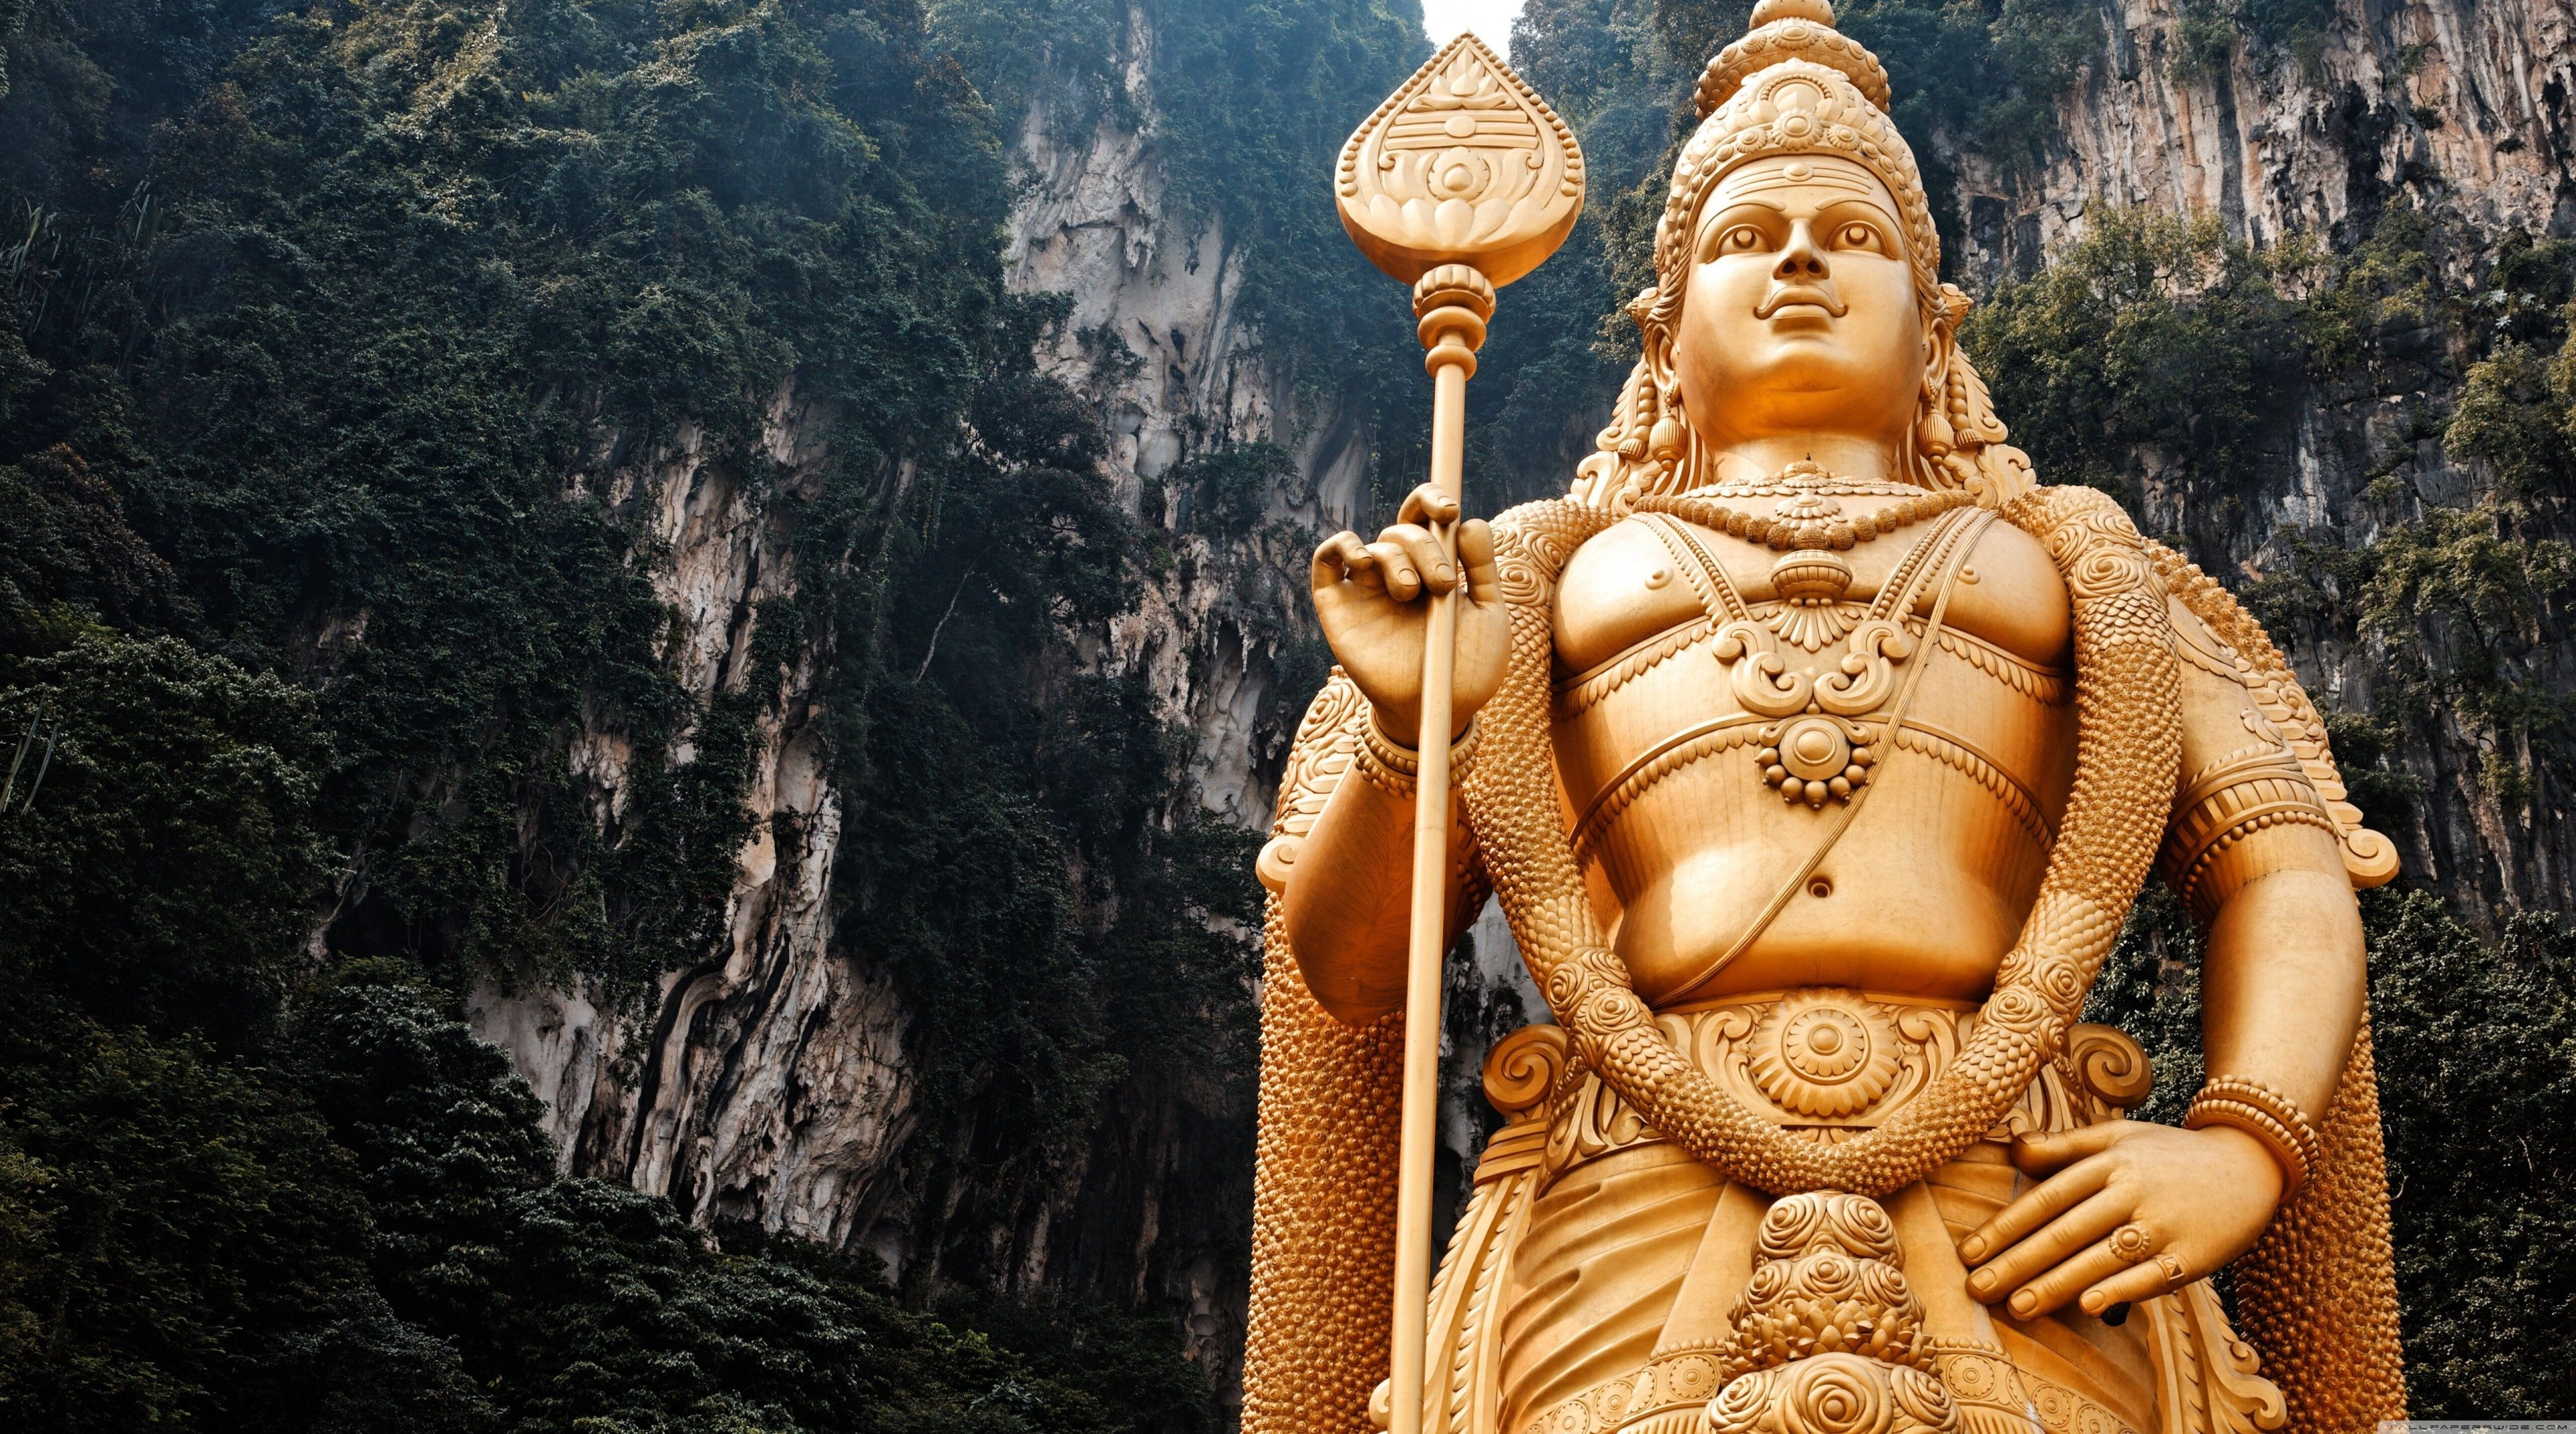 3840x2138 lord murugan statue 4k new hd pc wallpaper